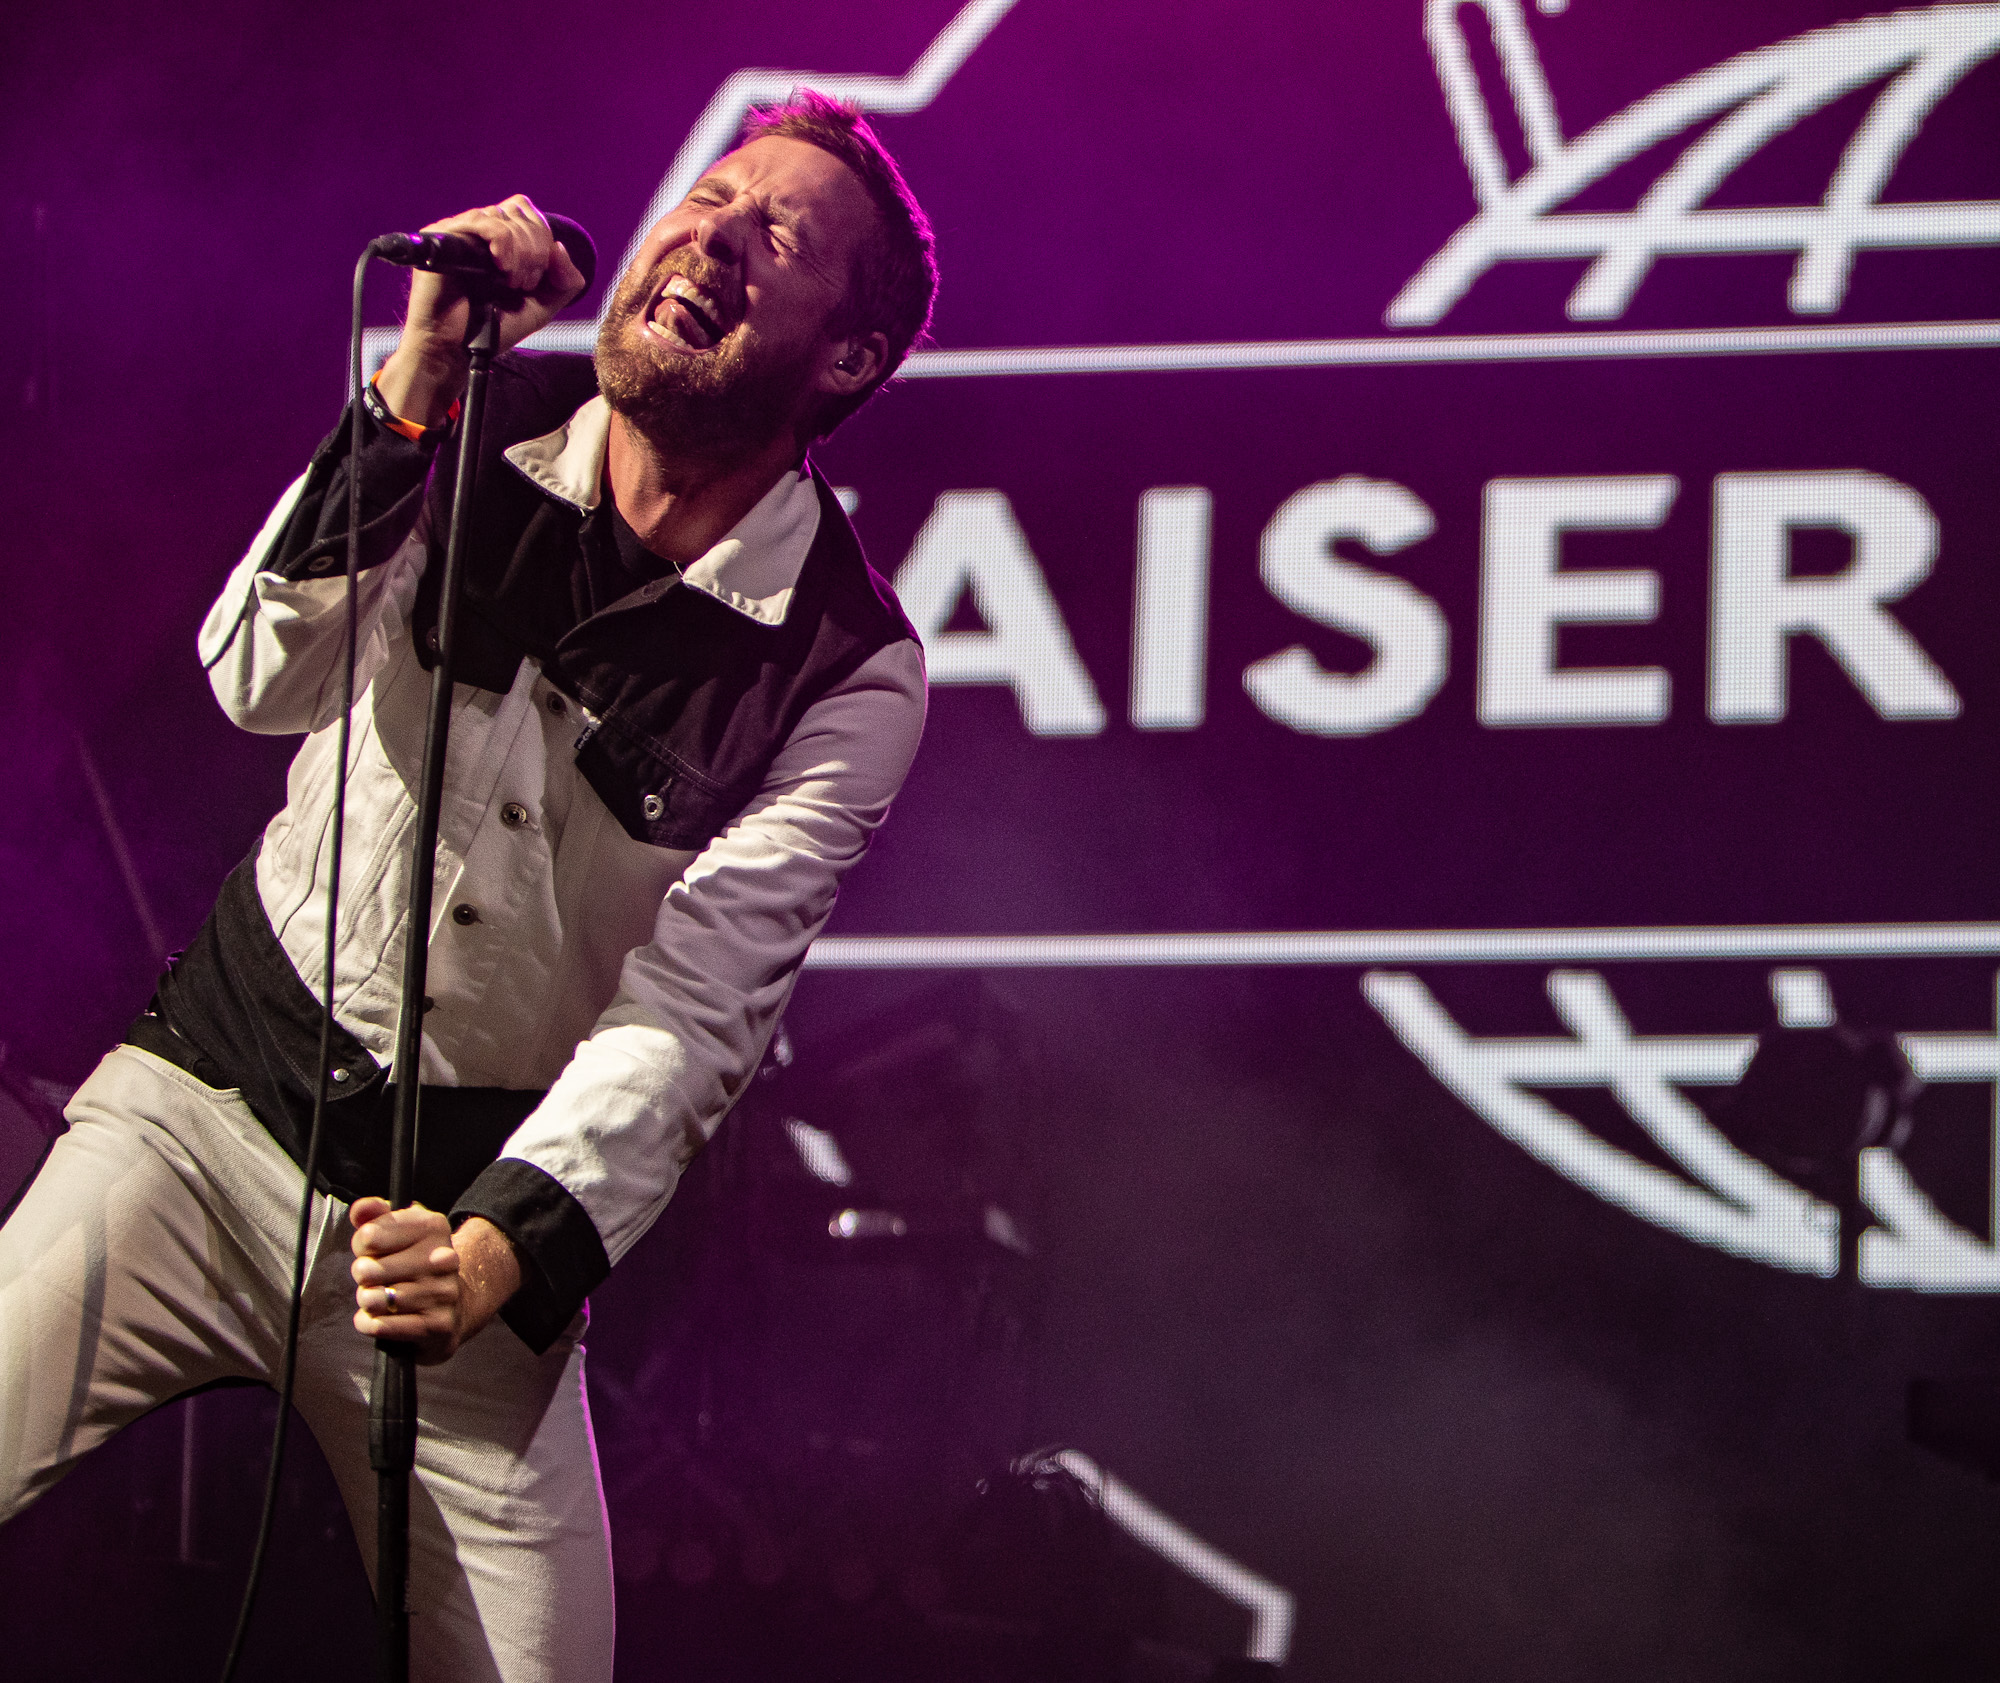 Kaiser Chiefs and Razorlight at The Castlefield Bowl 2021